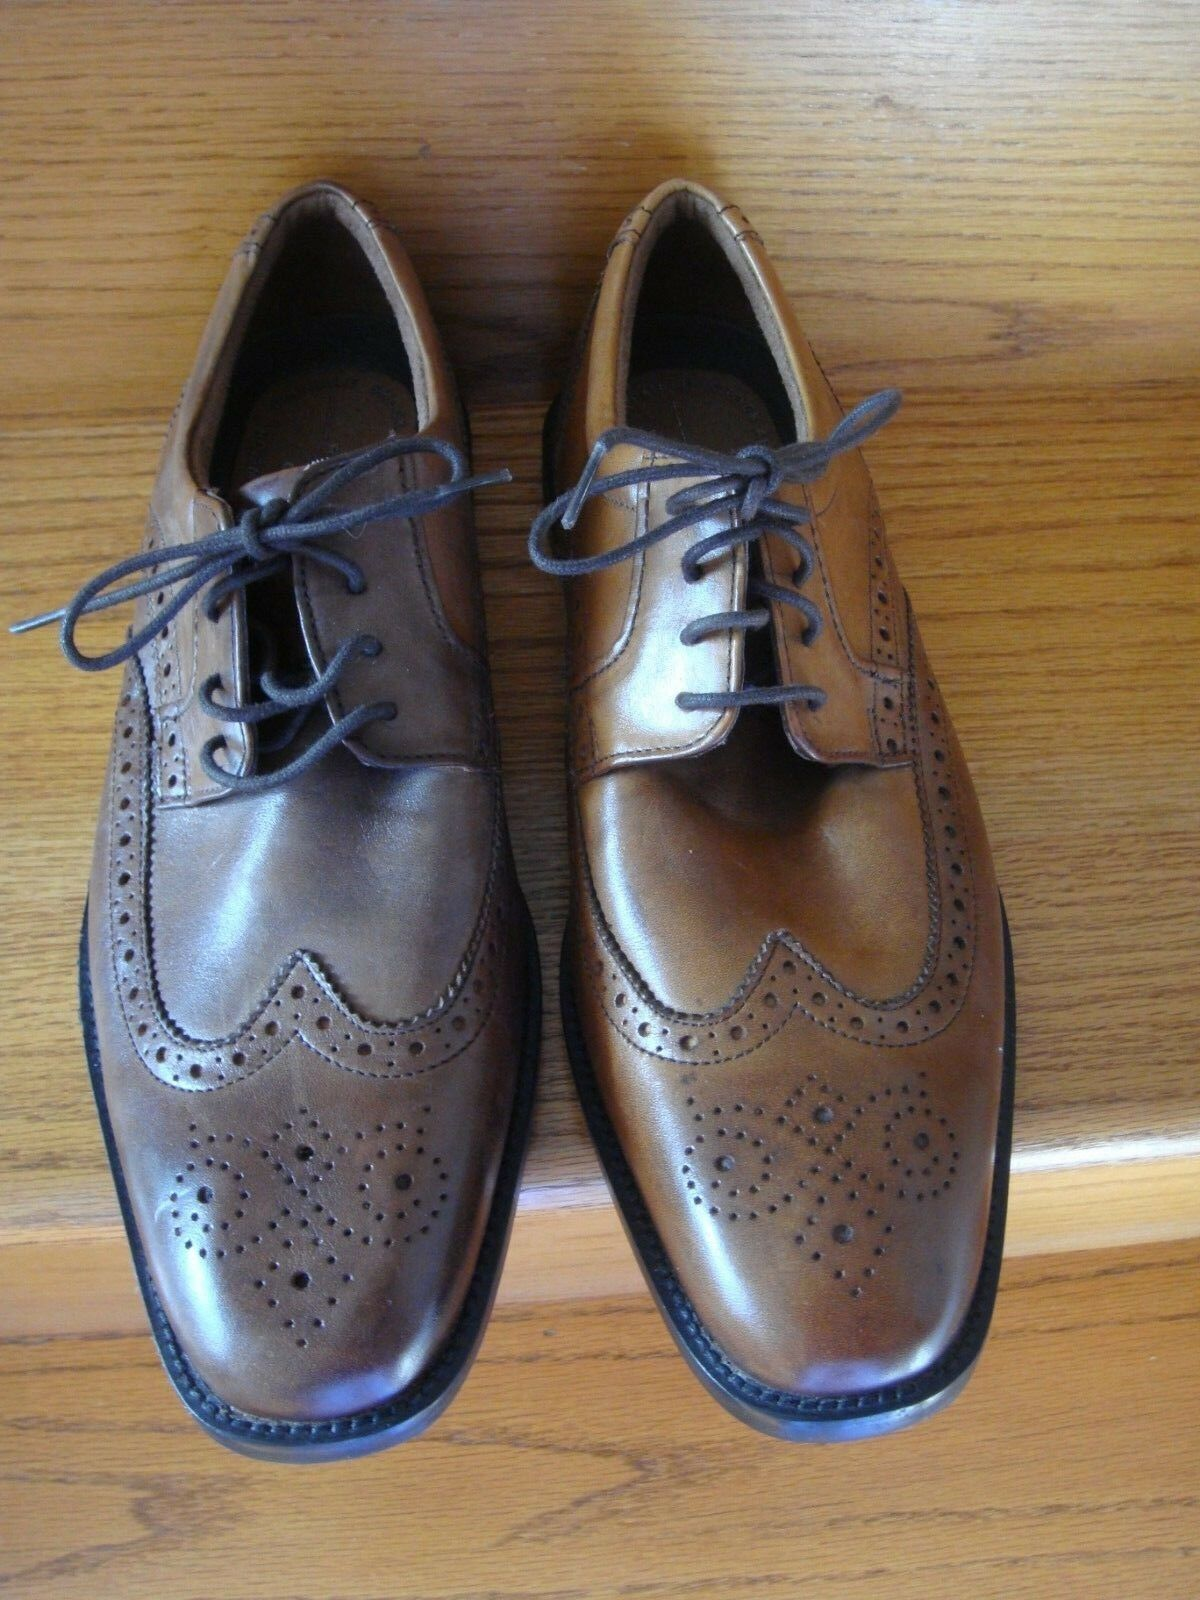 ROCKPORT WALKABILITY Men's Brown Leather Wingtip Lace Up Oxford shoes 10.5 M NEW